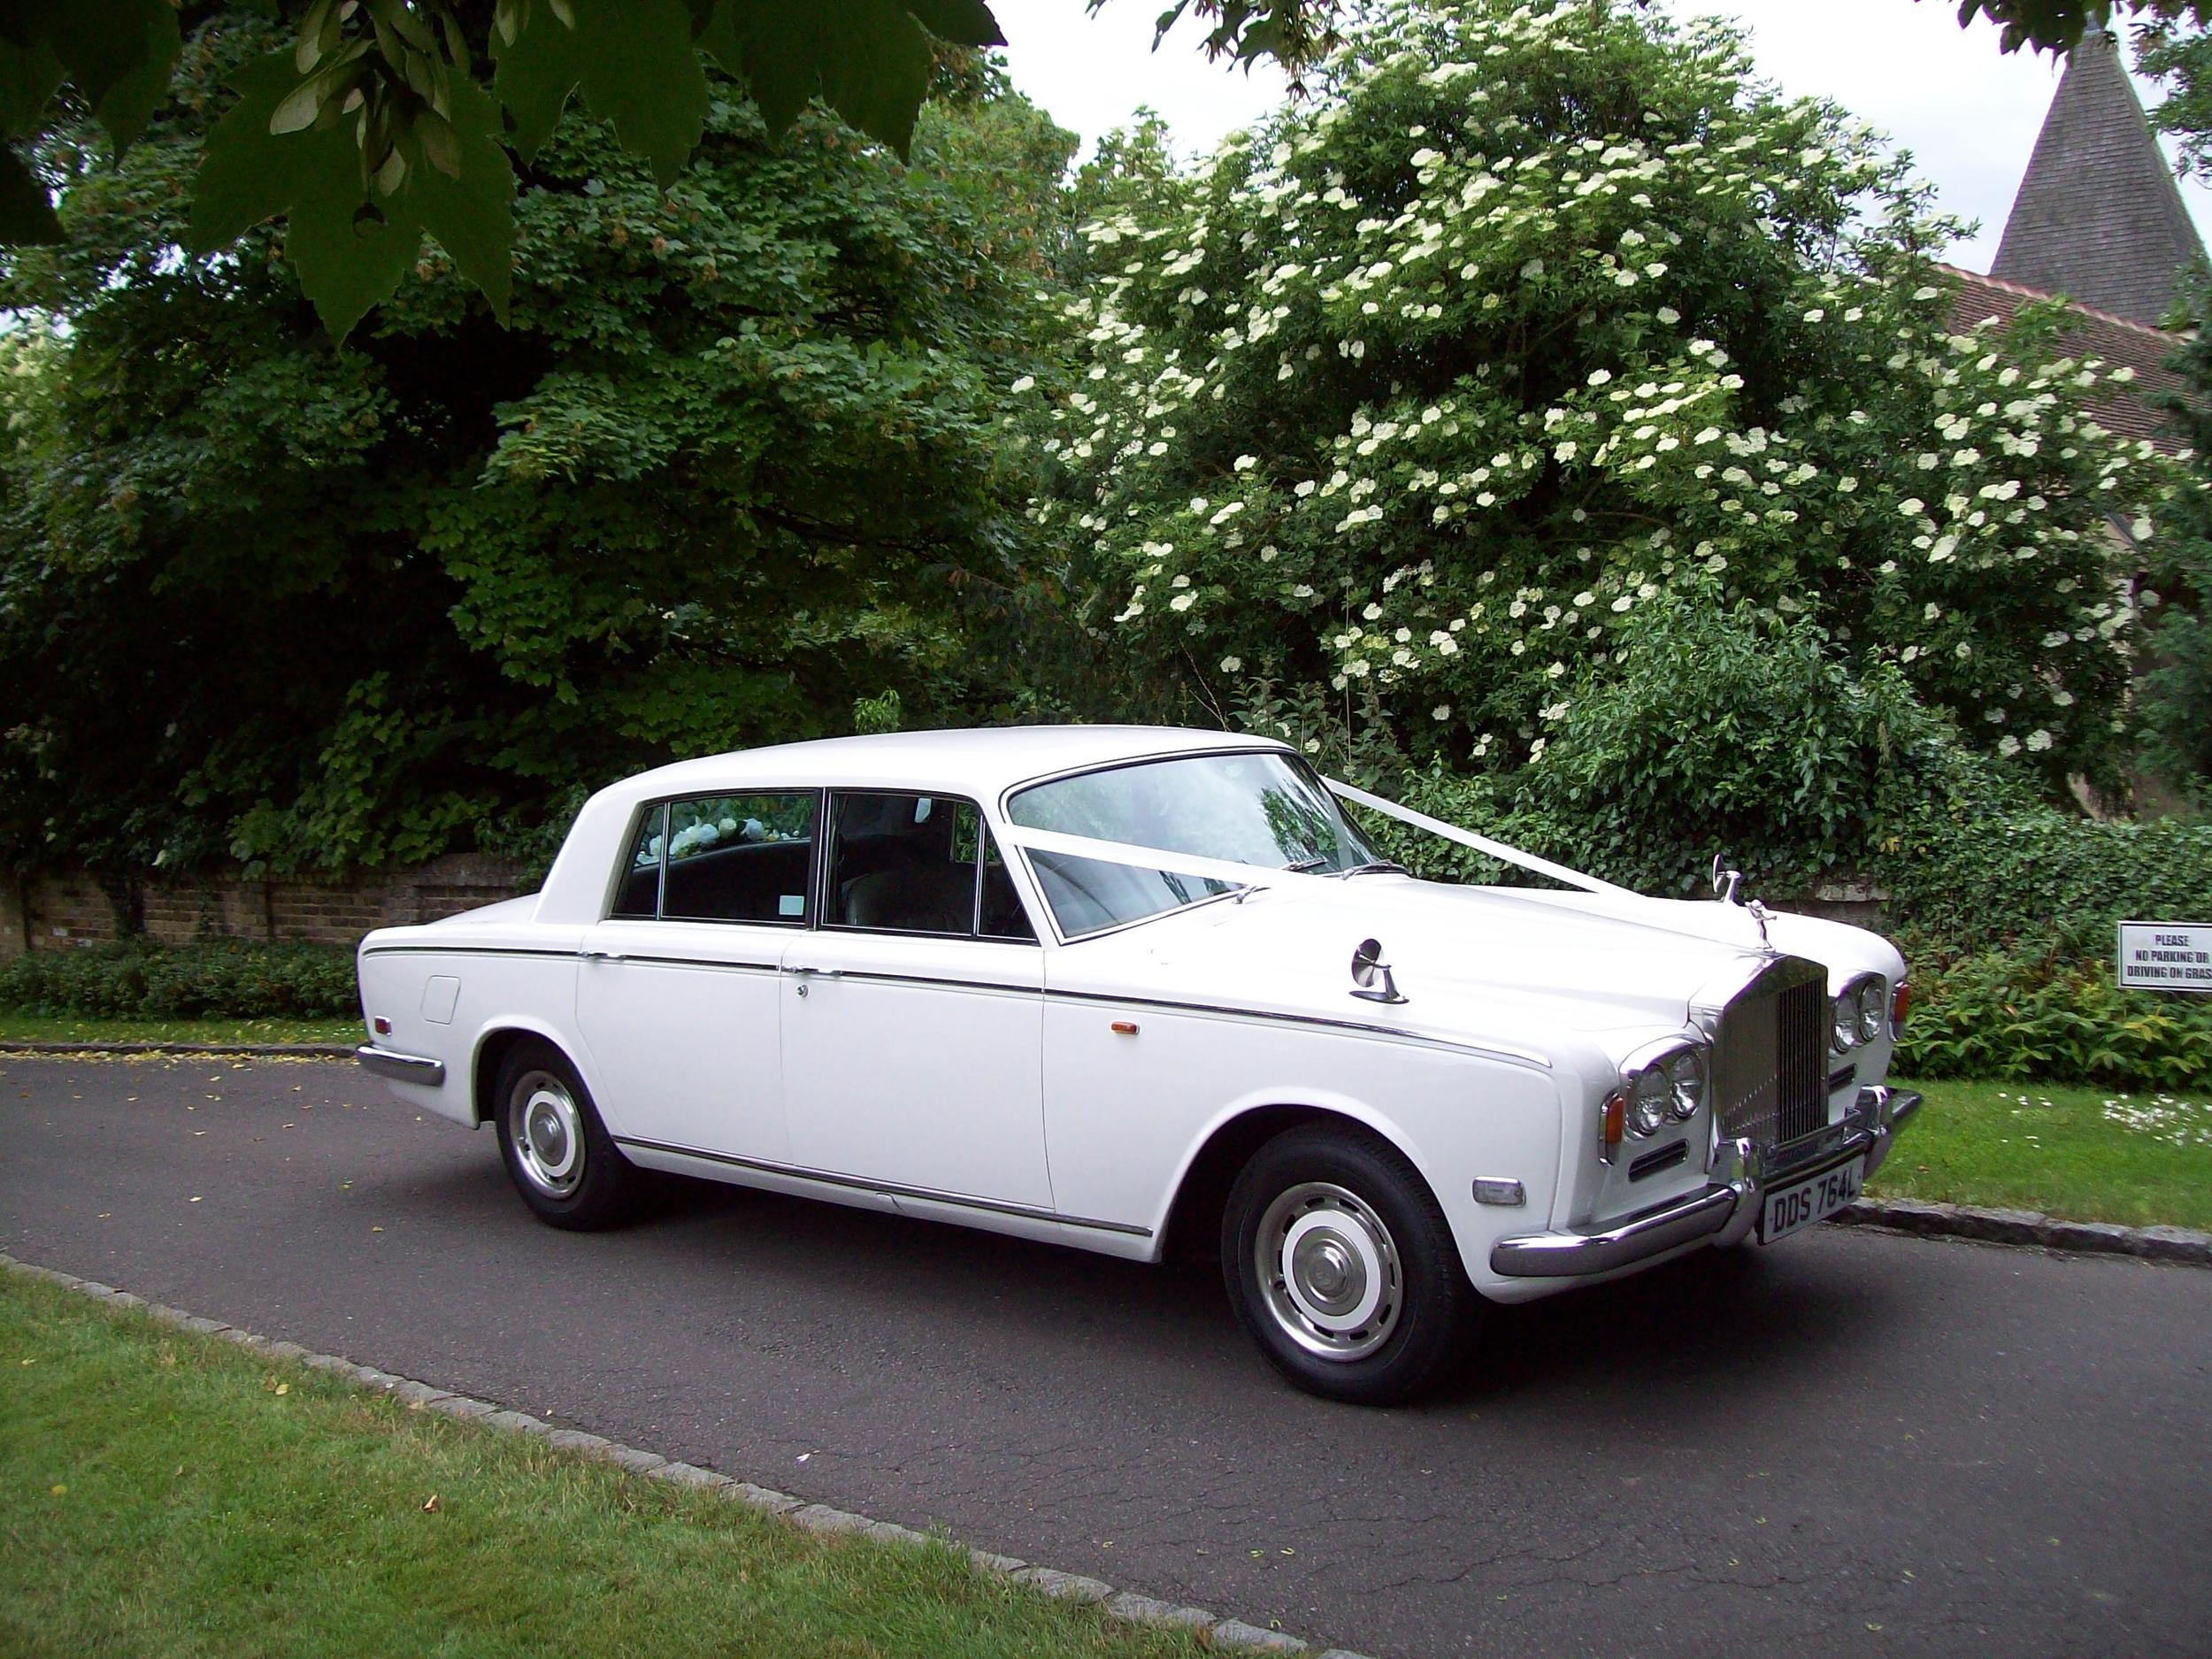 Rolls Royce Wedding Car.JPG